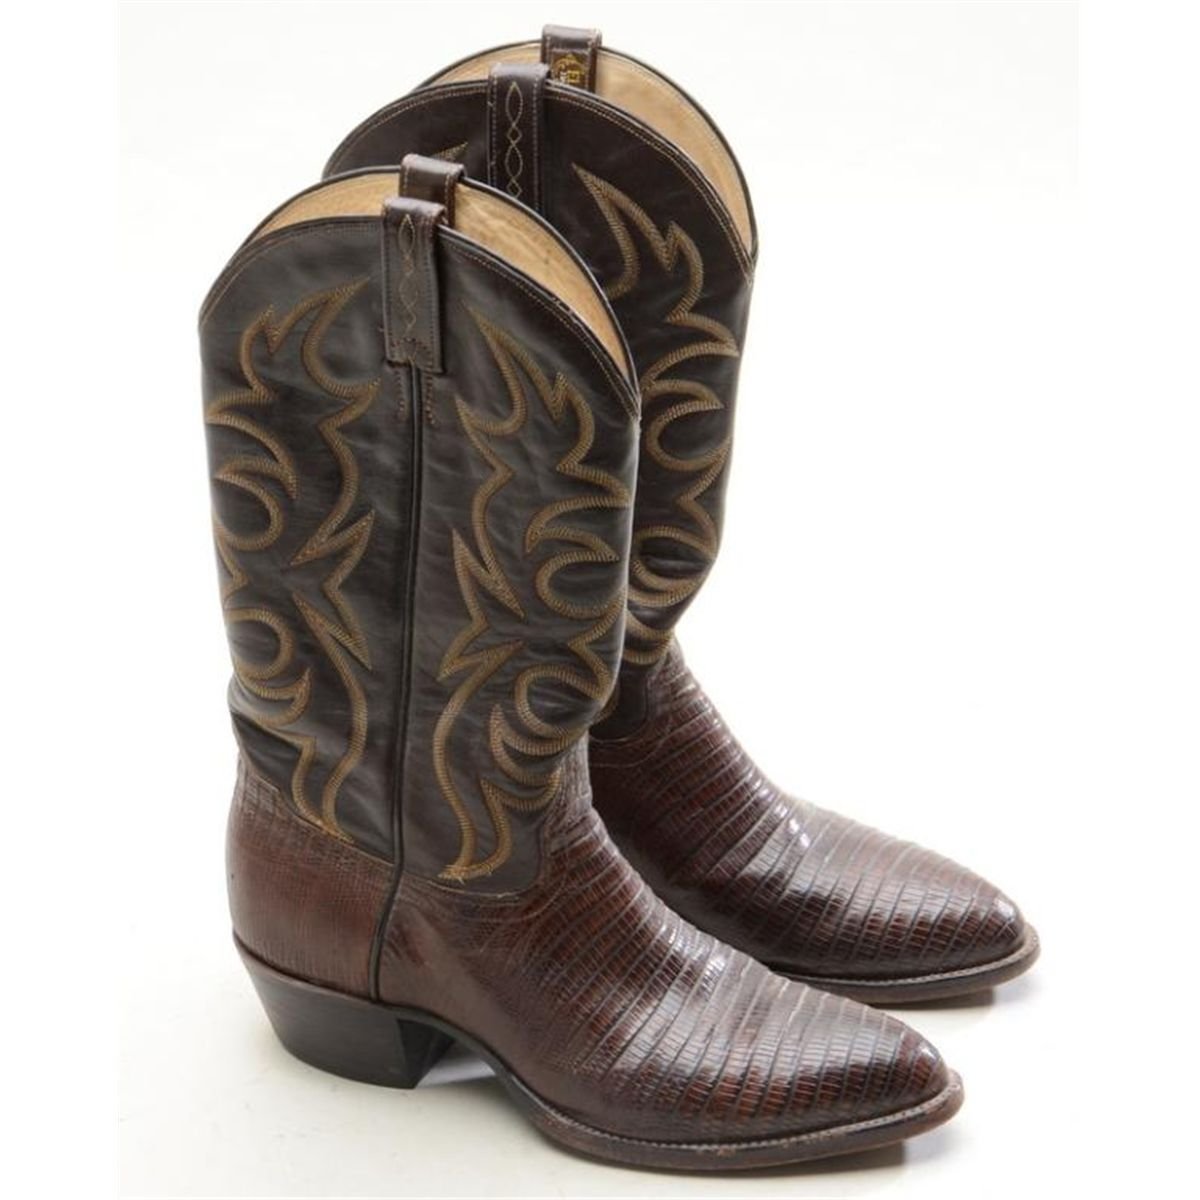 Boots - Boot Hto - Part 658